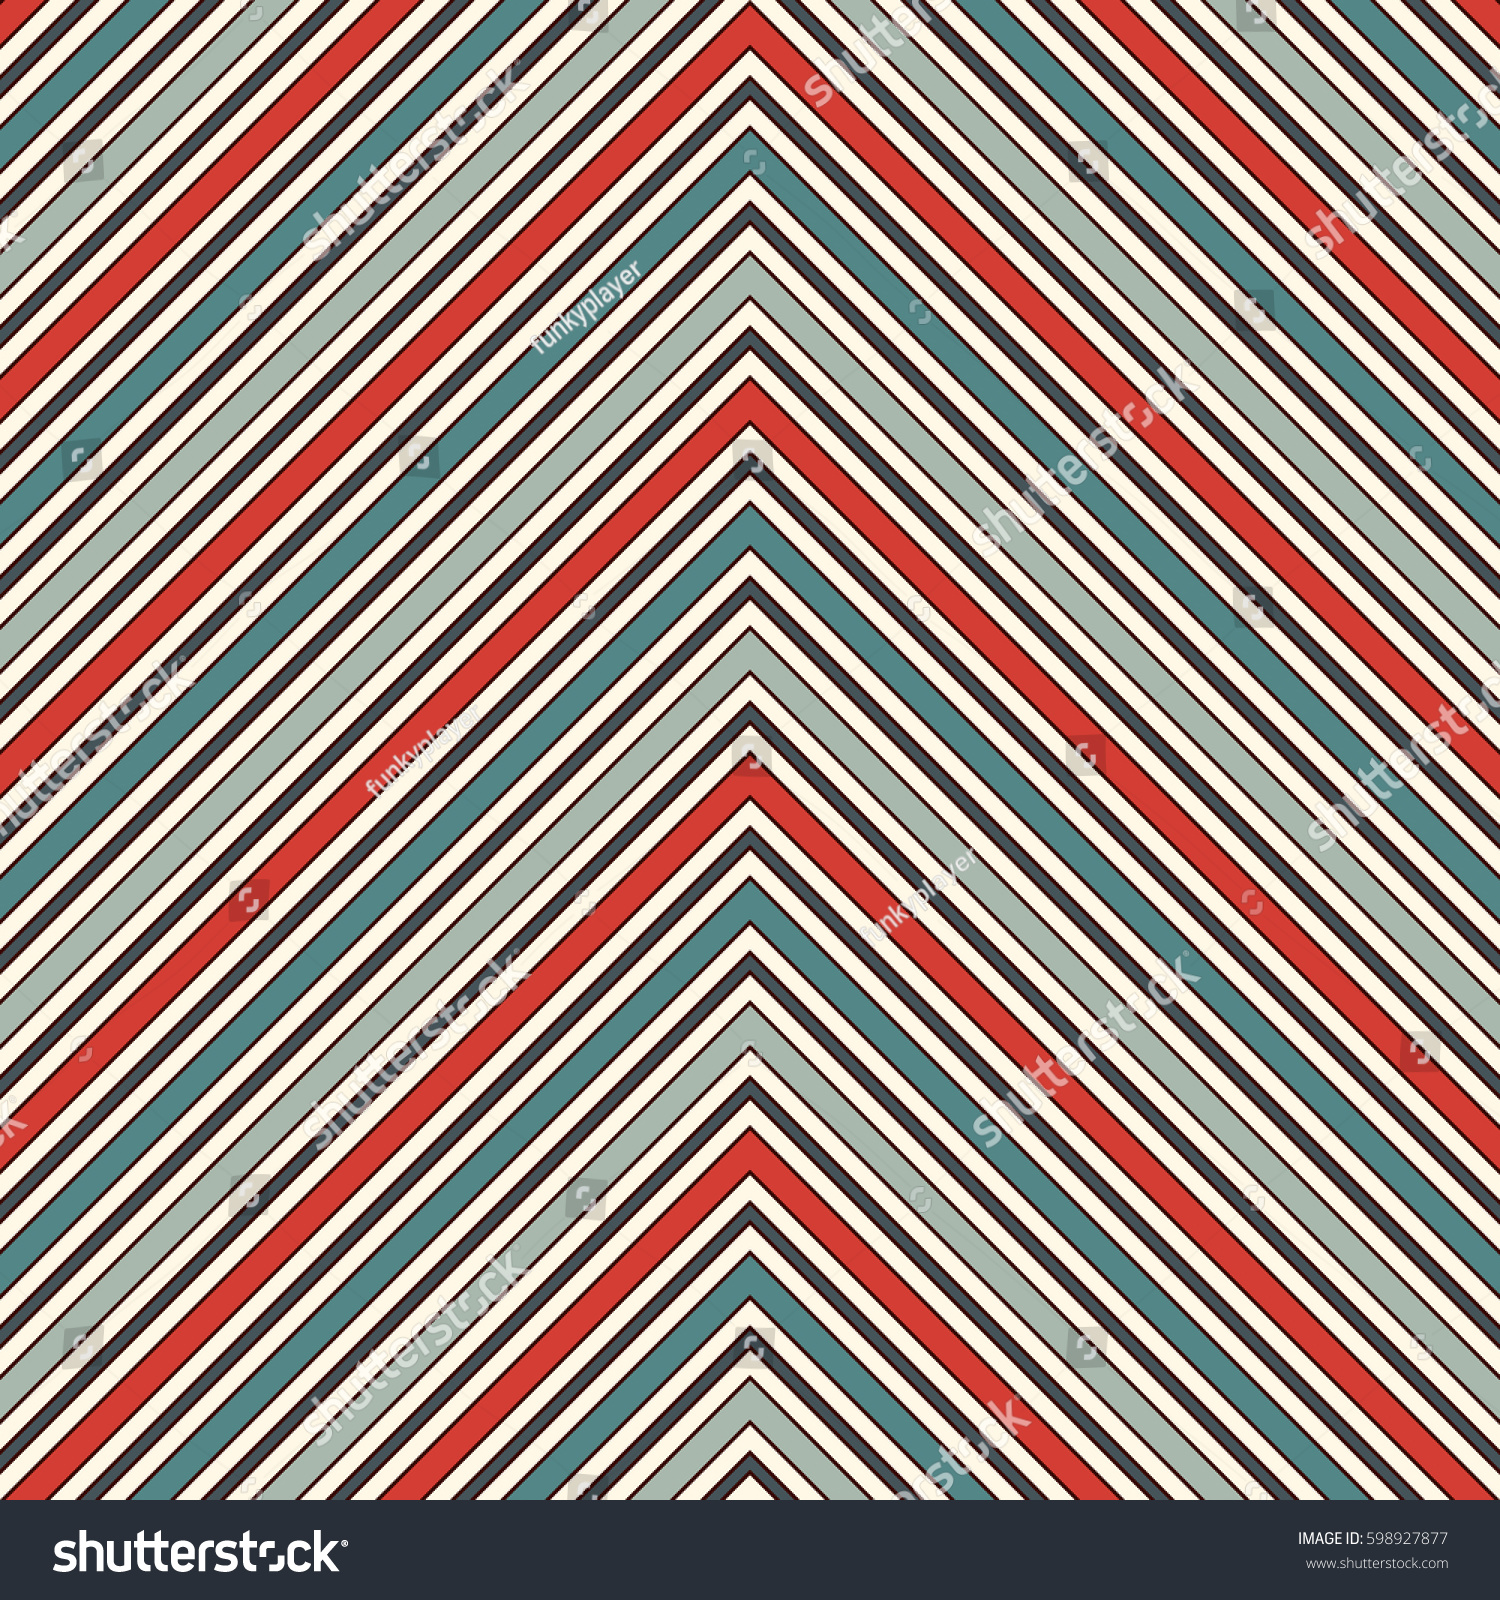 chevron diagonal stripes abstract background retro stock vector 598927877 shutterstock. Black Bedroom Furniture Sets. Home Design Ideas